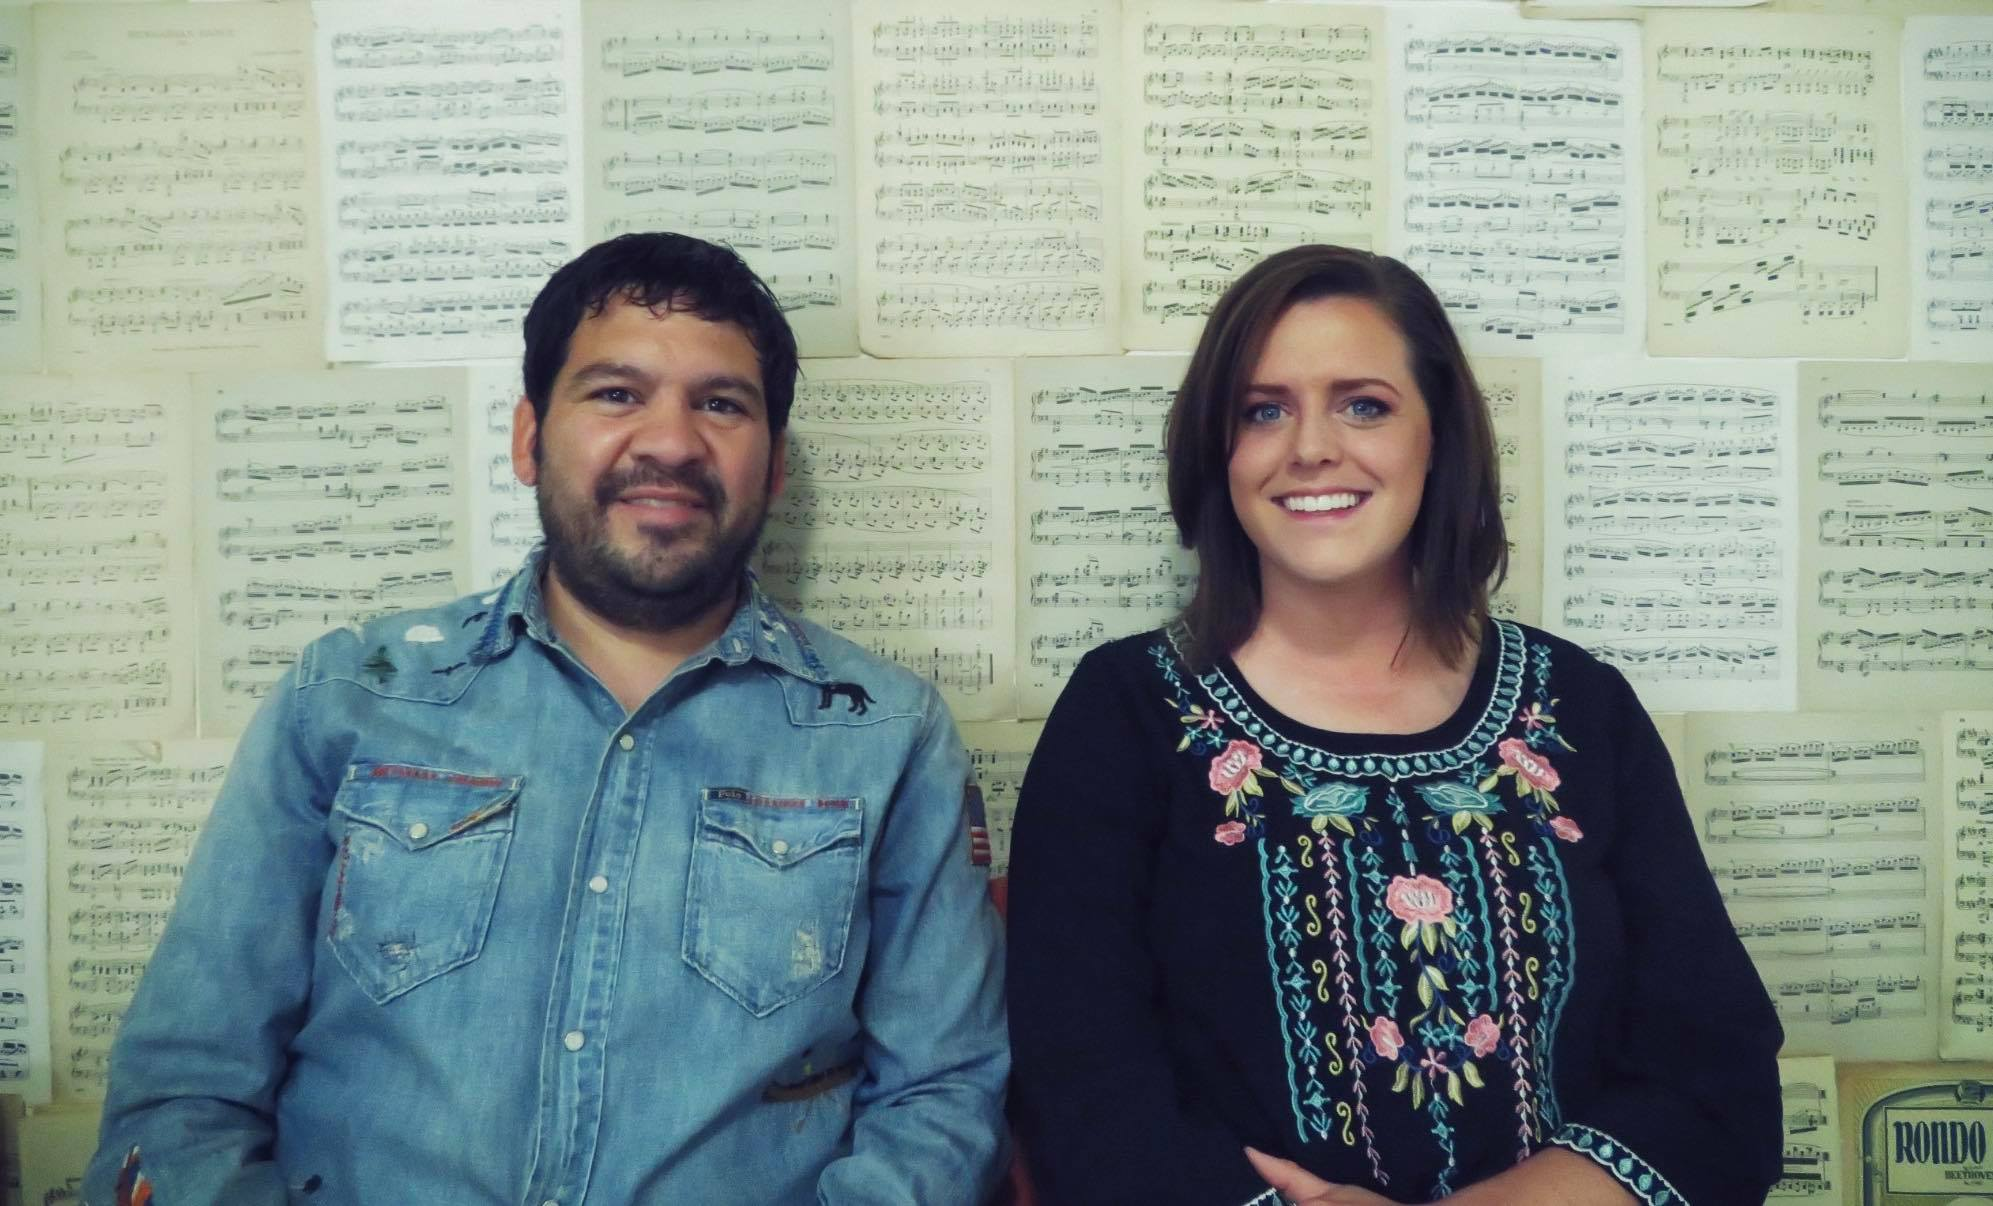 Bobby and his wife sitting in front of a wall covered with sheet music